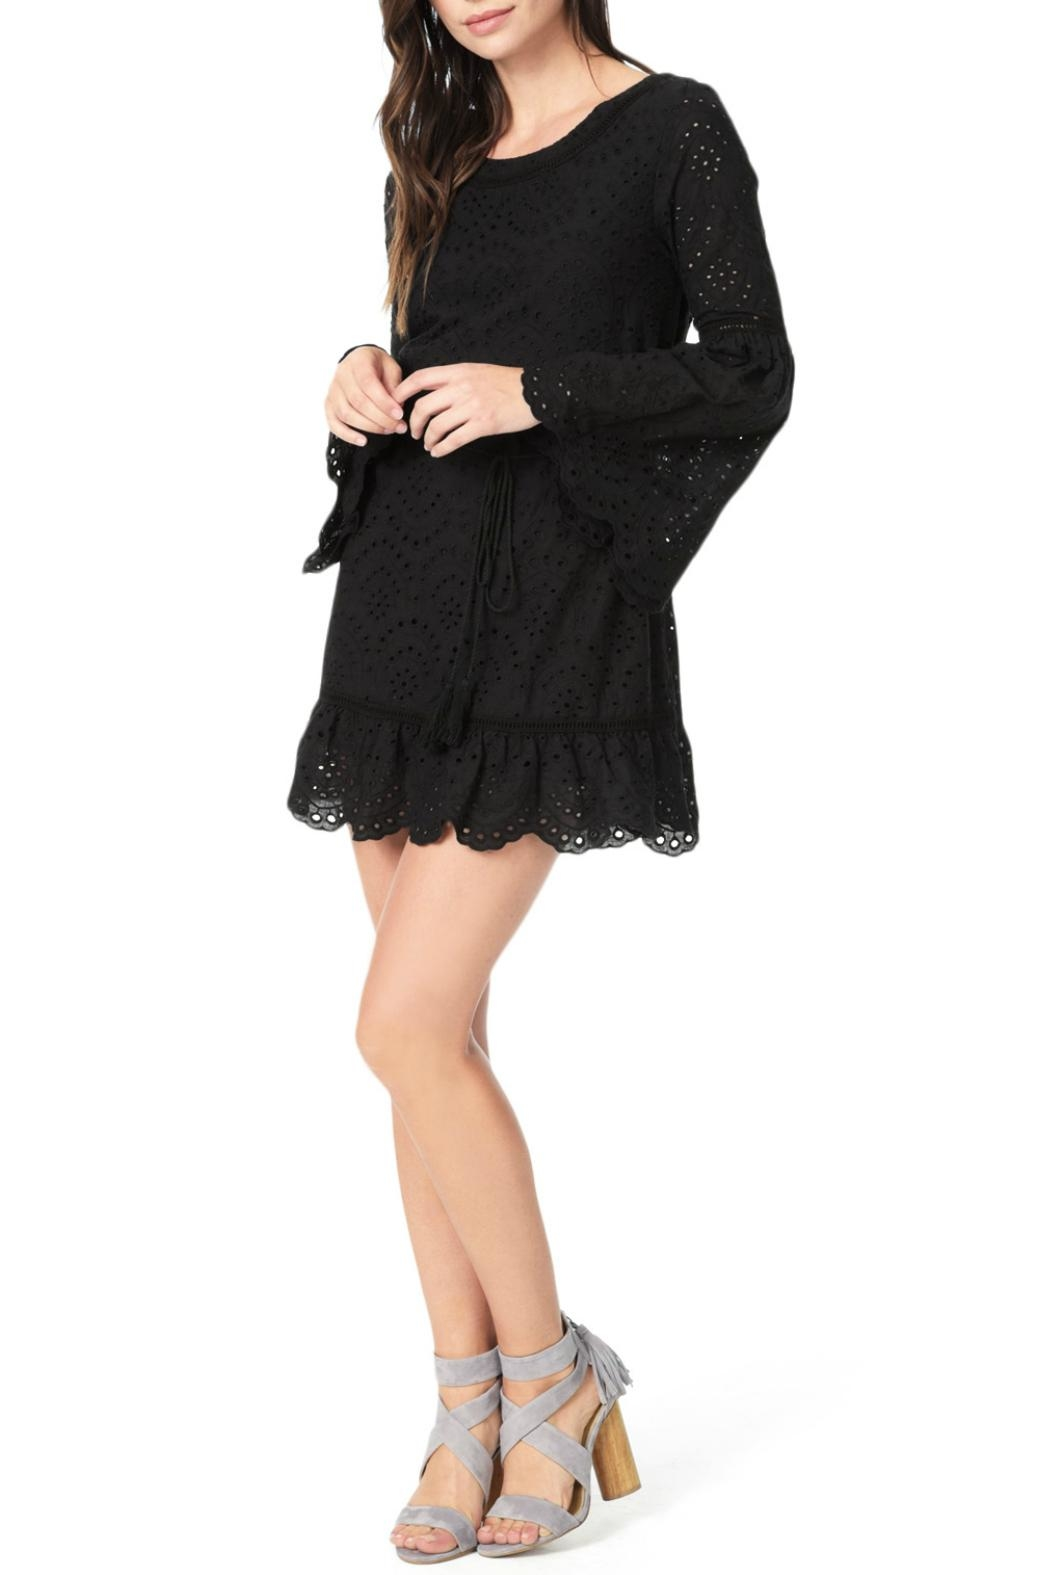 Cupcakes and Cashmere Ruben Flutter Dress - Main Image